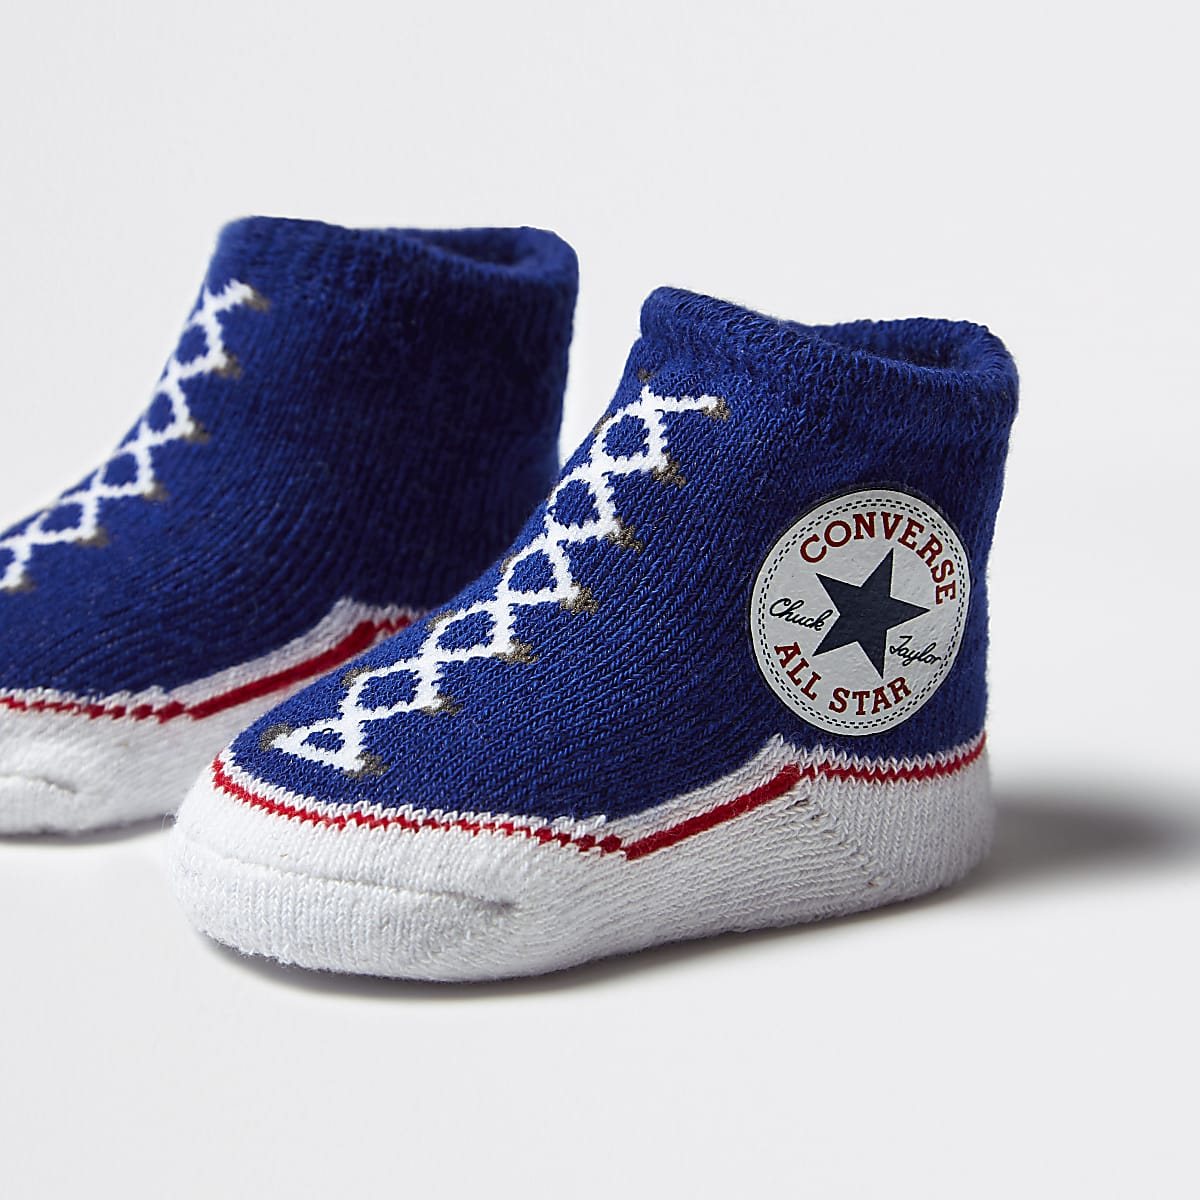 403d1fb0f6b513 Baby Converse All Star navy booties - Baby Girls Accessories - Mini ...